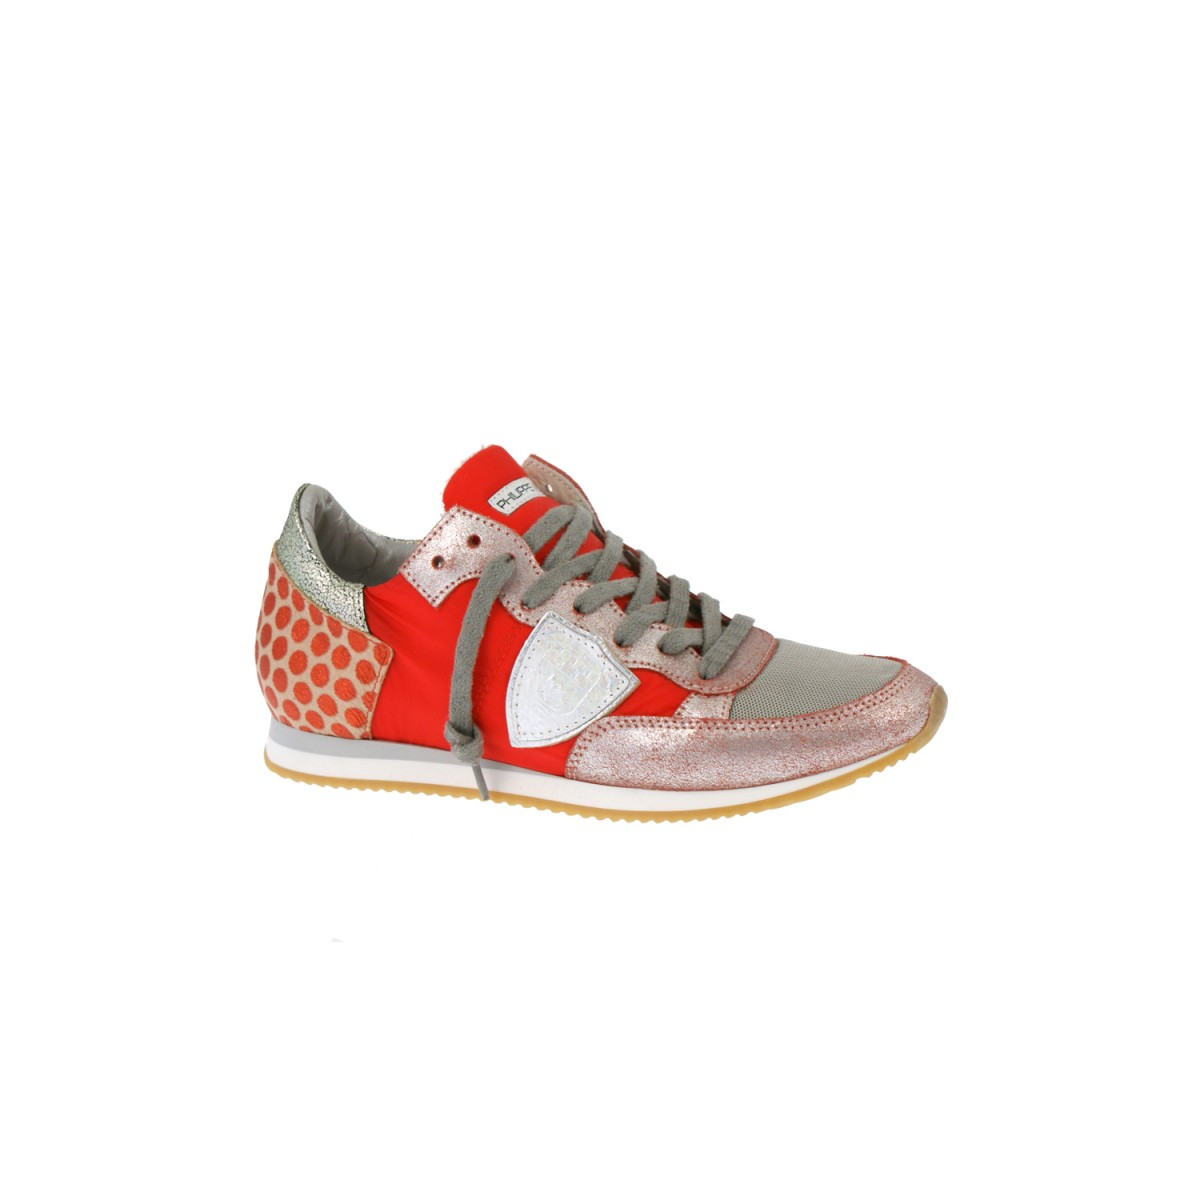 Philippe Model TRLD DT03 Tropez Red Dots-31